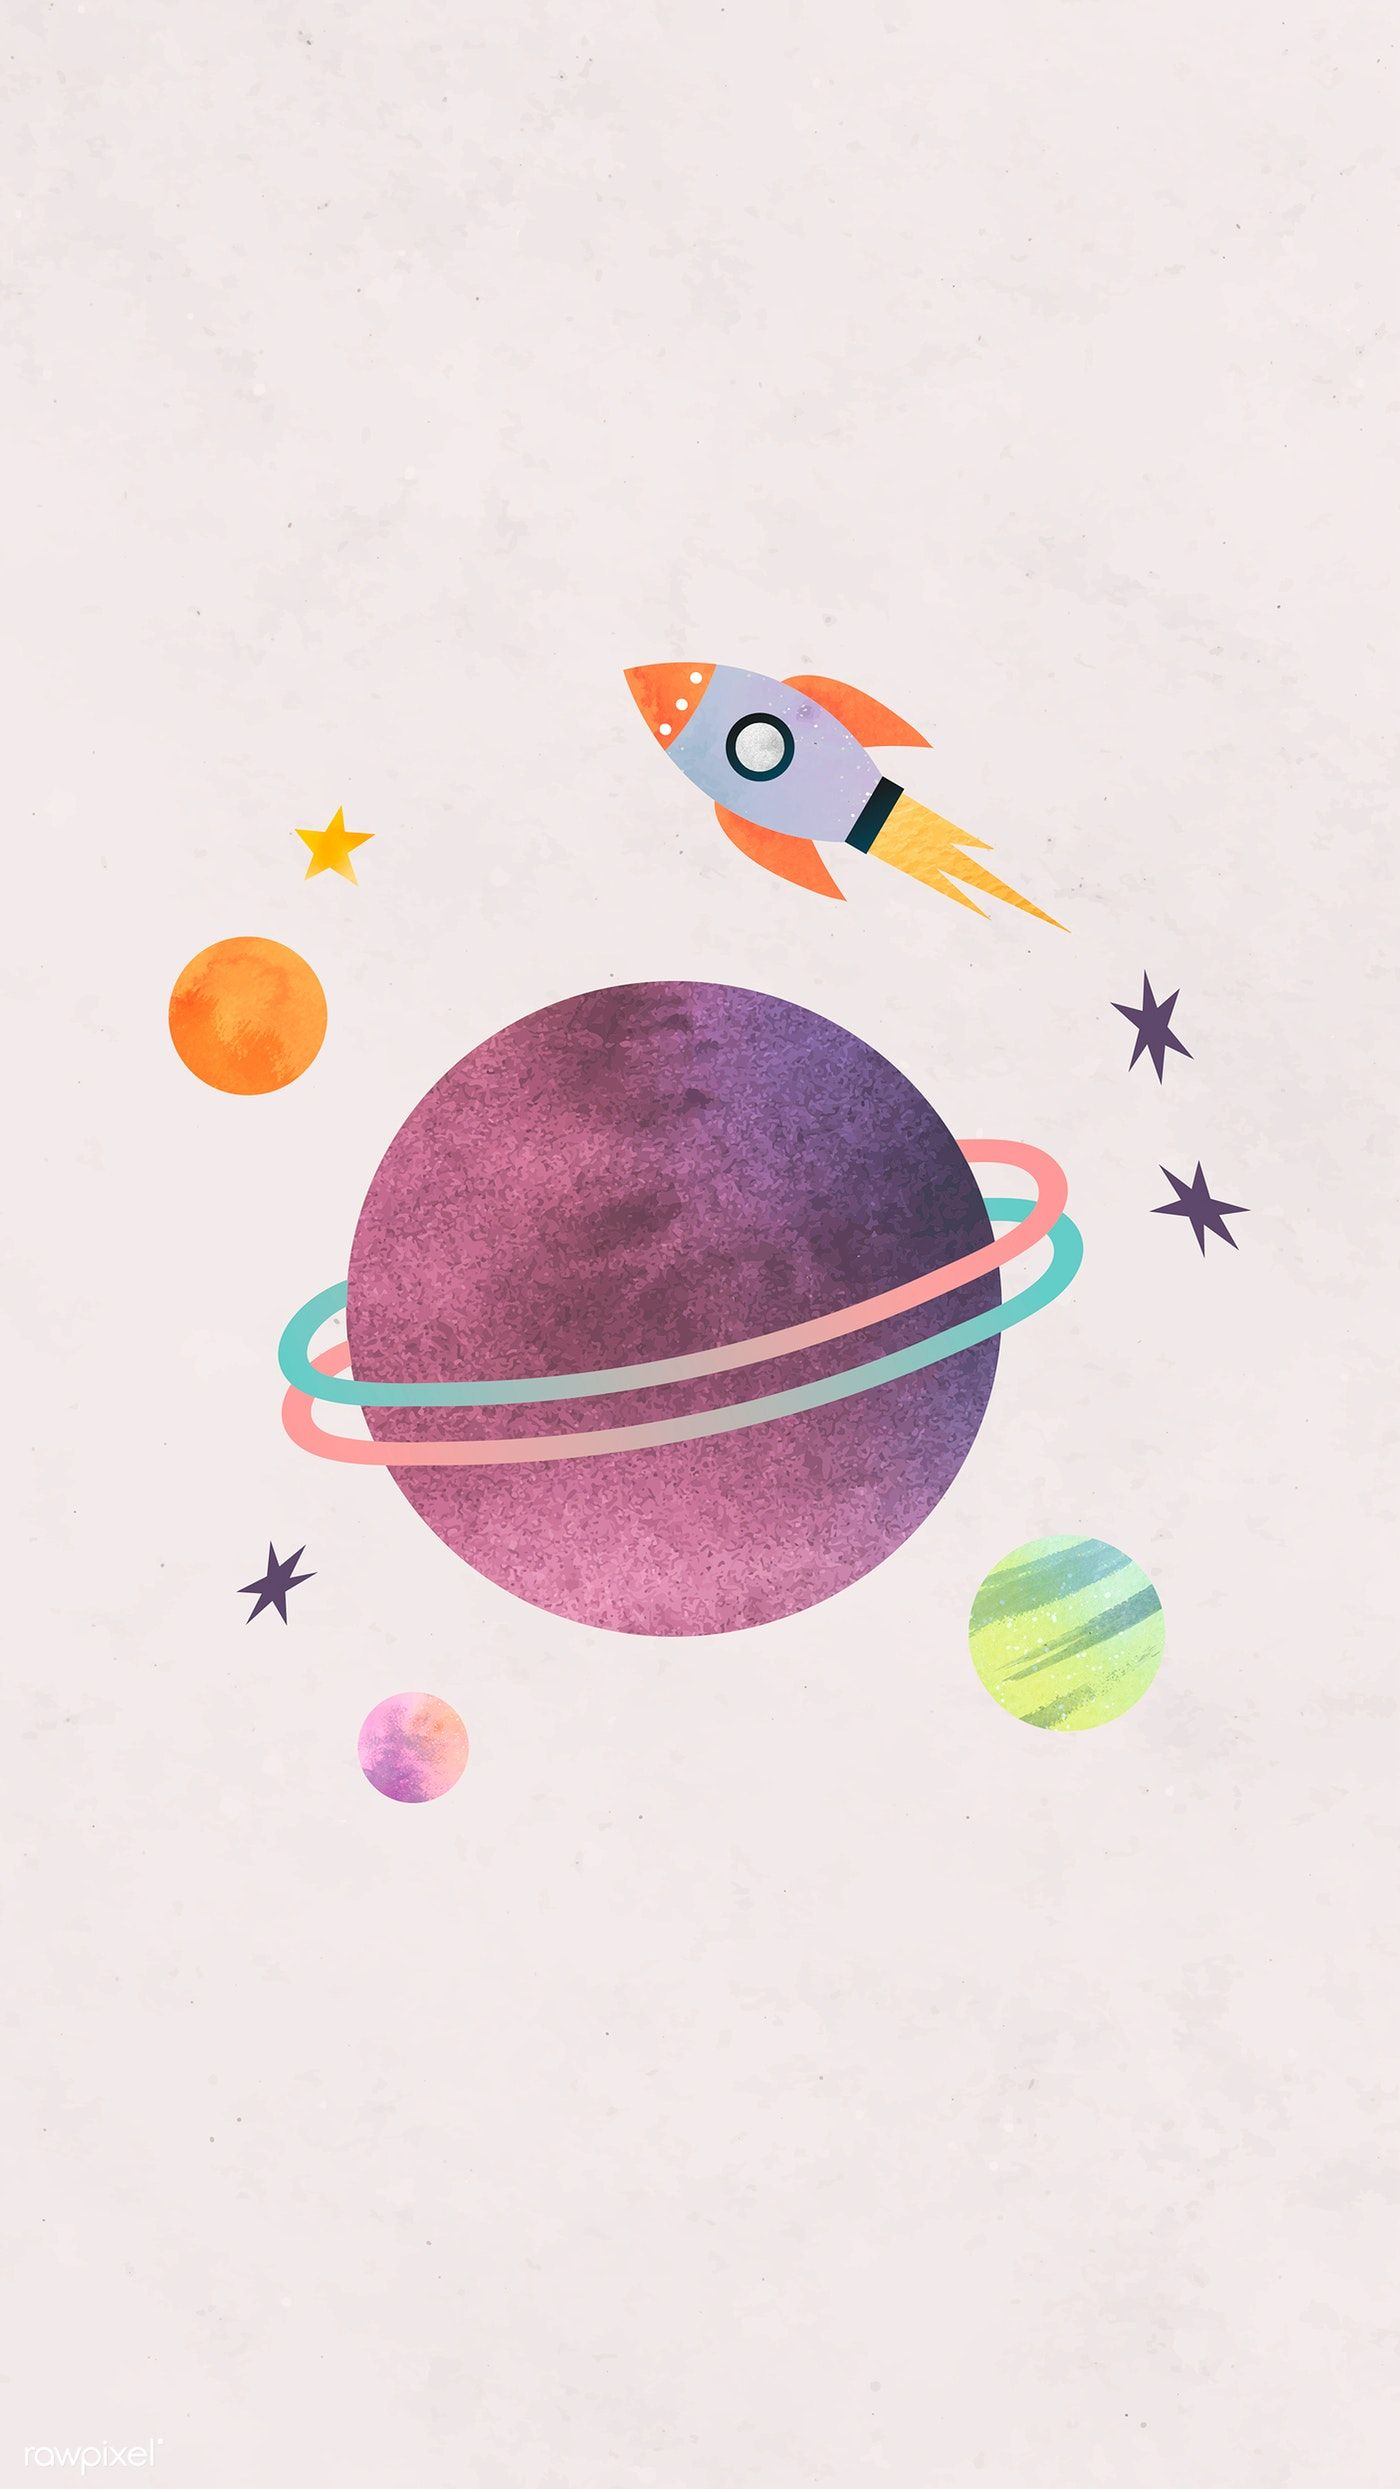 Download premium vector of Colorful galaxy watercolor doodle with a rocket